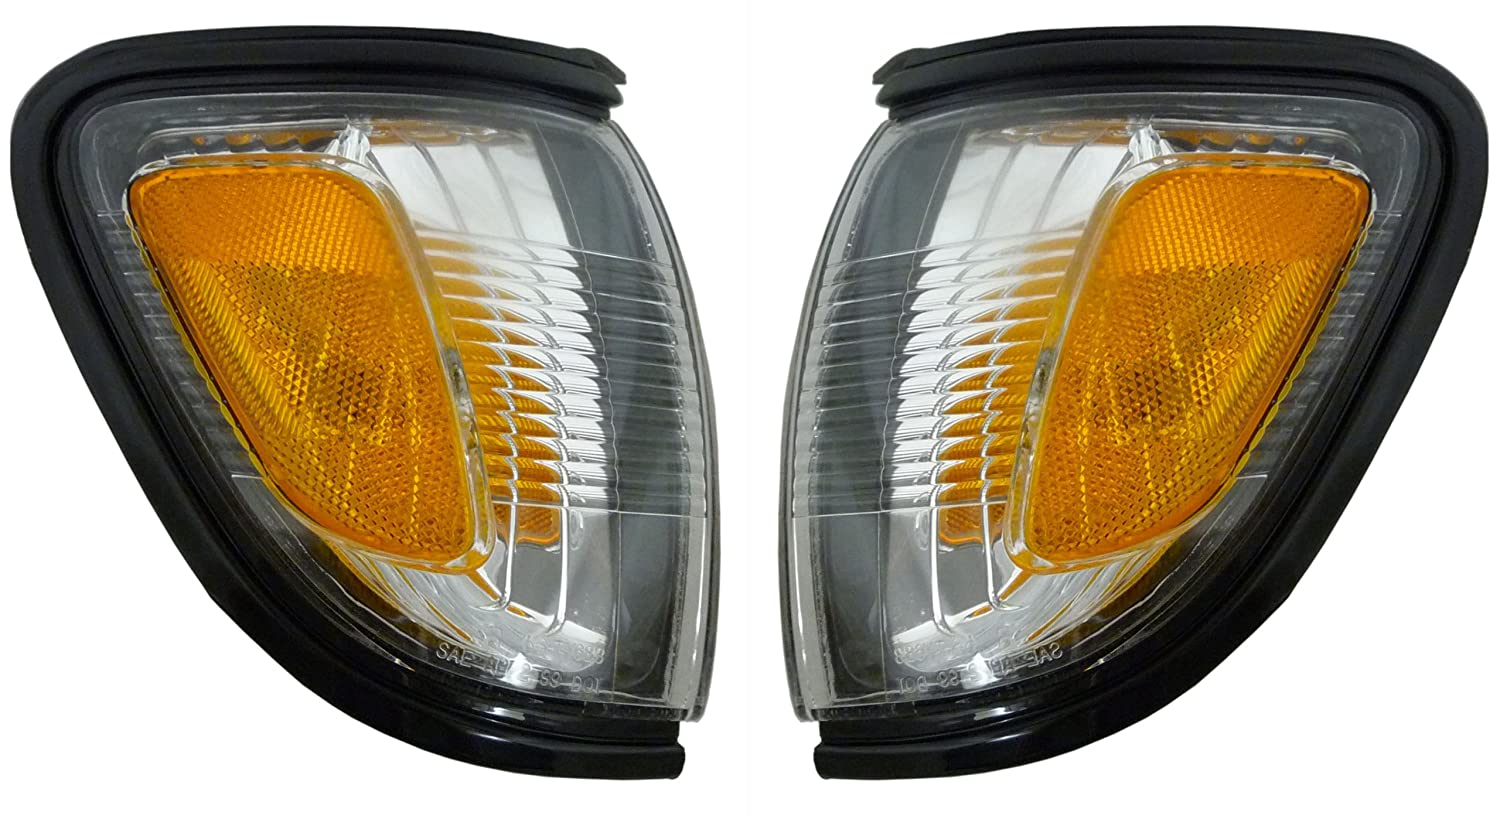 Toyota Tacoma Replacement Corner Light Assembly (Black(209)) - 1-Pair AutoLightsBulbs